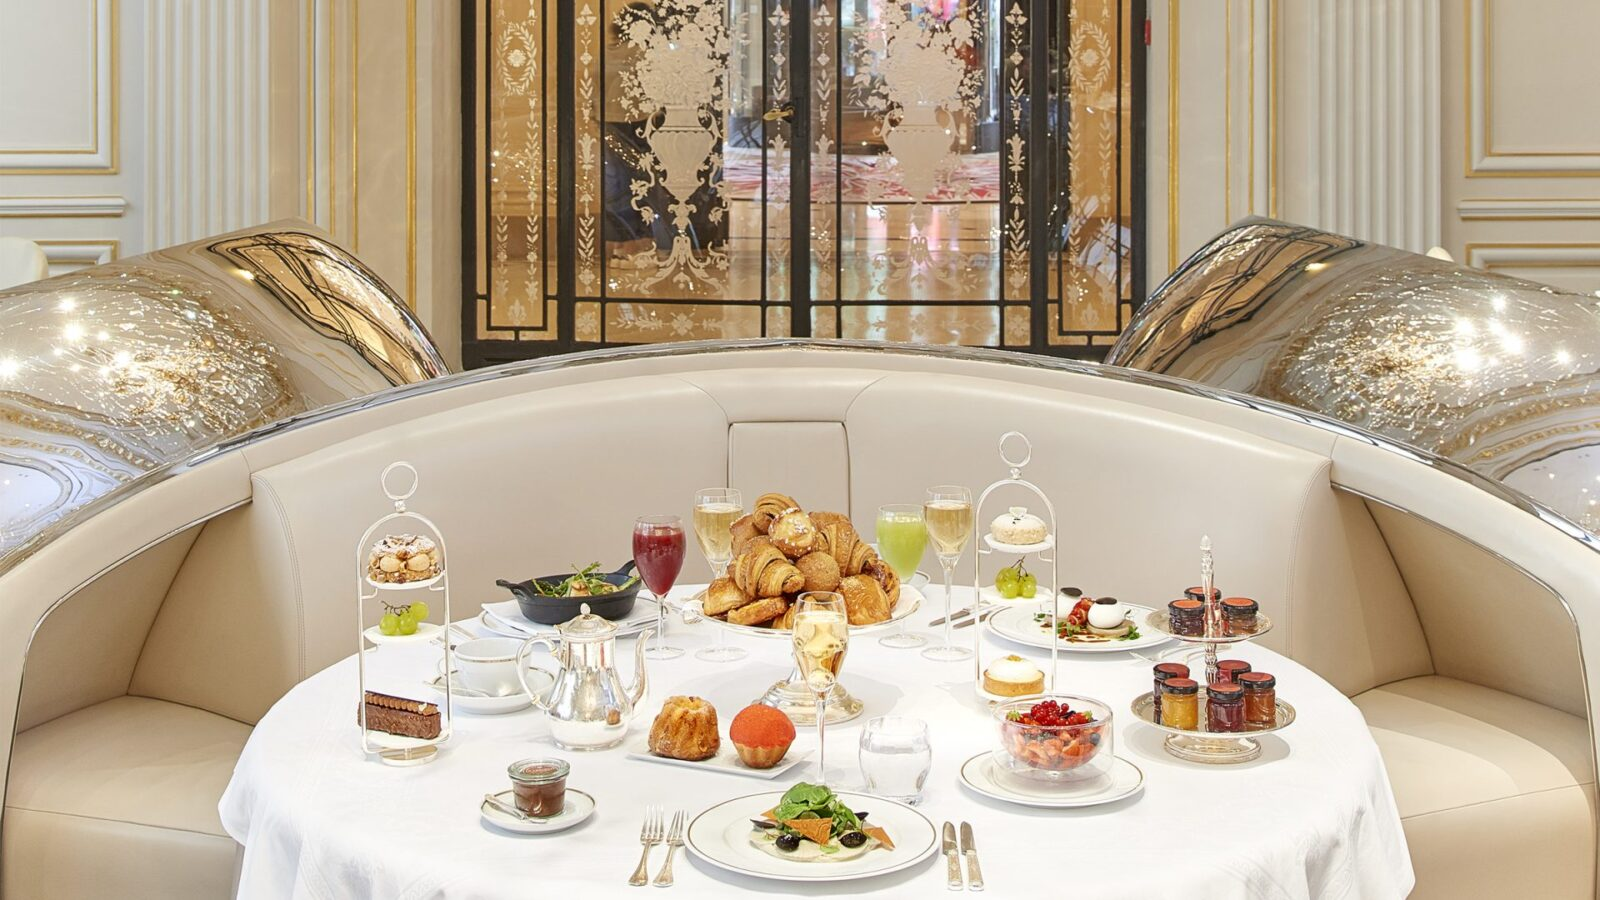 Breakfast at Hôtel Plaza Athénée, Paris